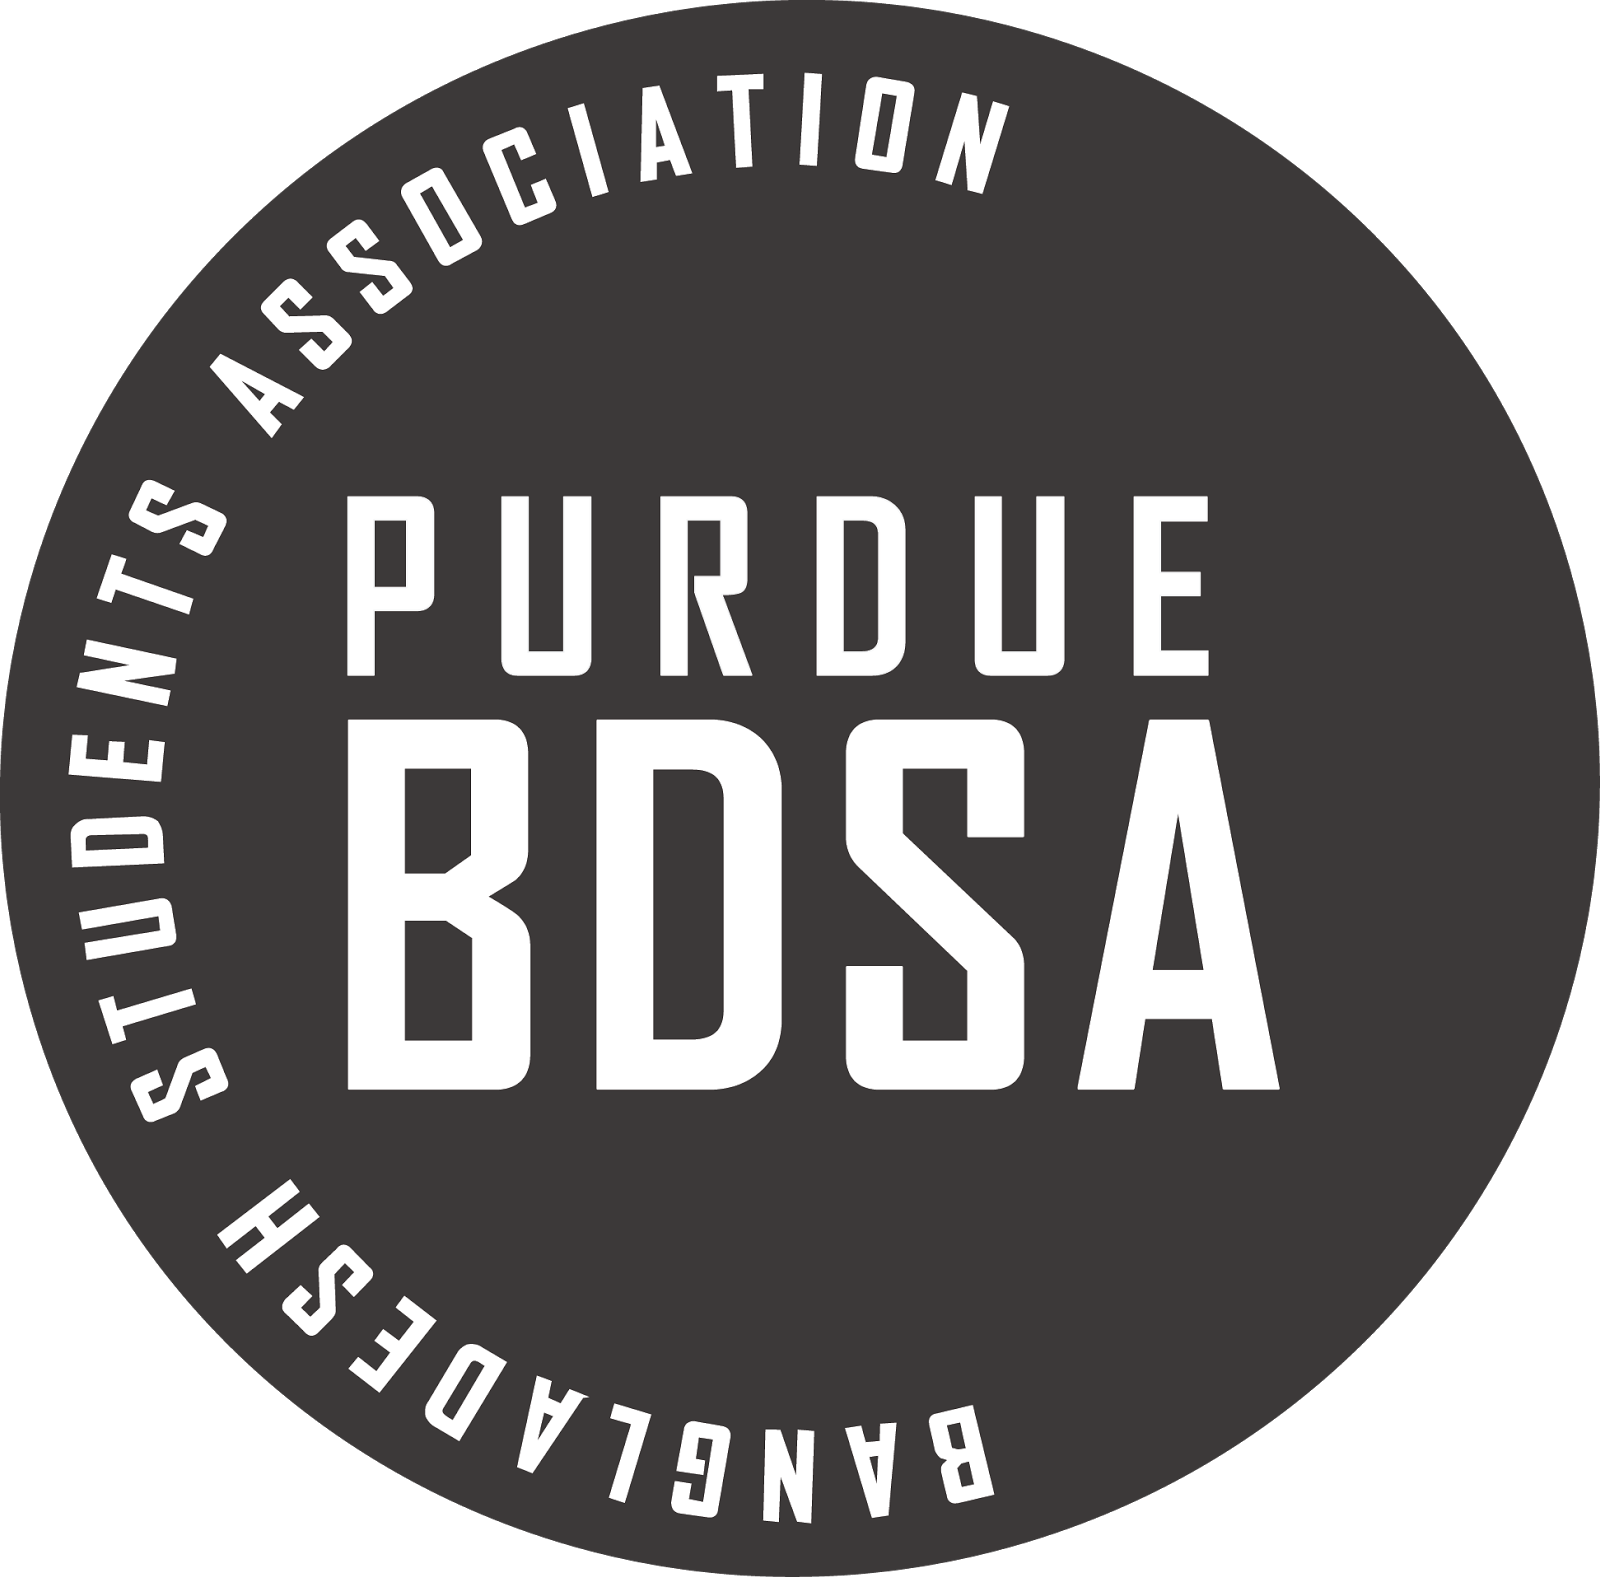 Bangladesh Students Association (BDSA) Purdue University